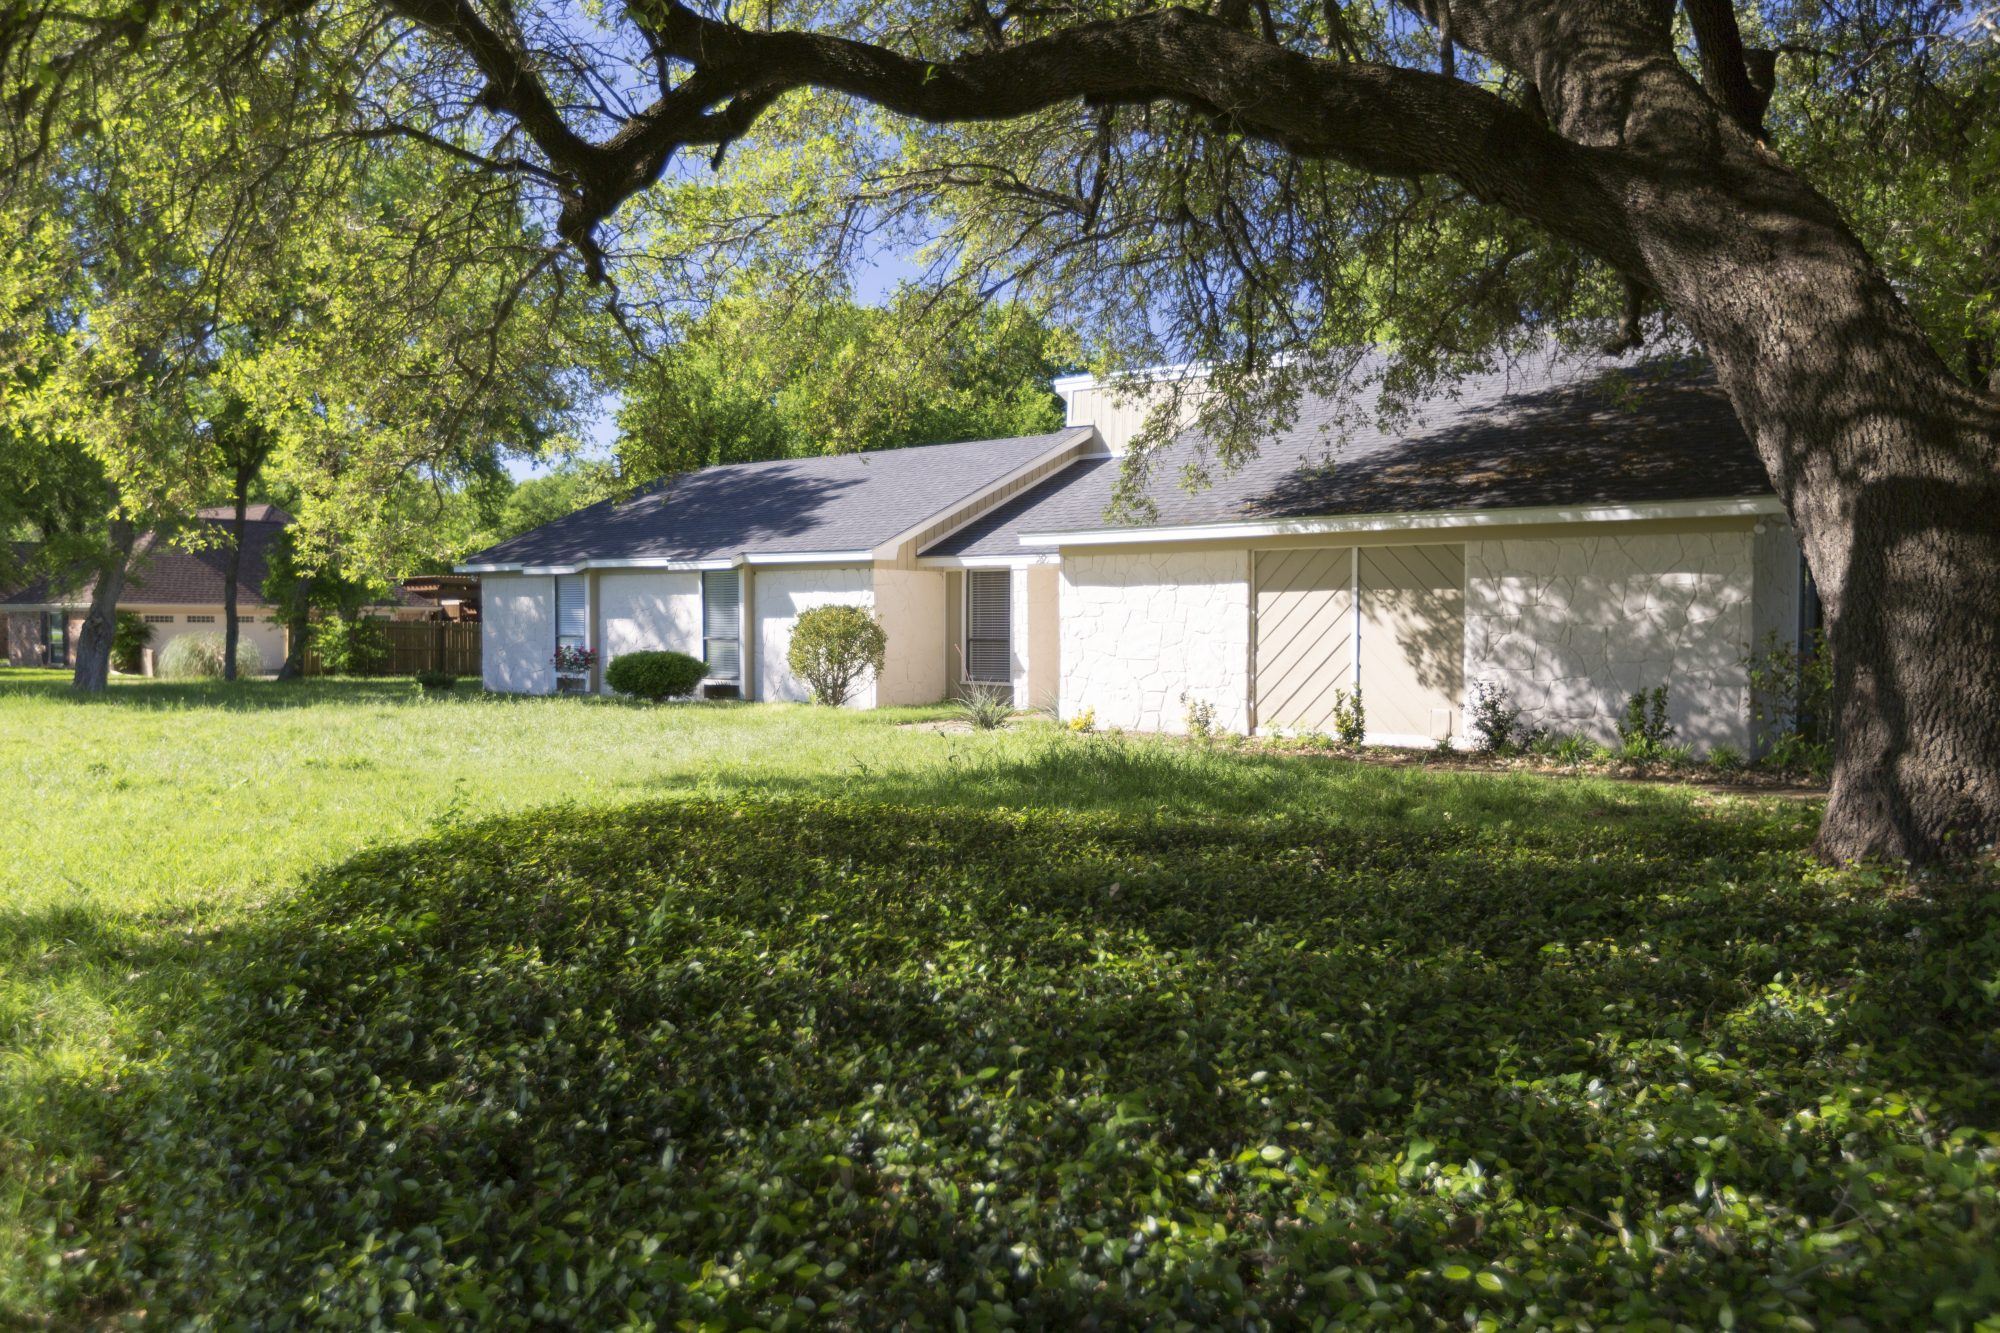 The home before renovations, as seen on Fixer Upper.